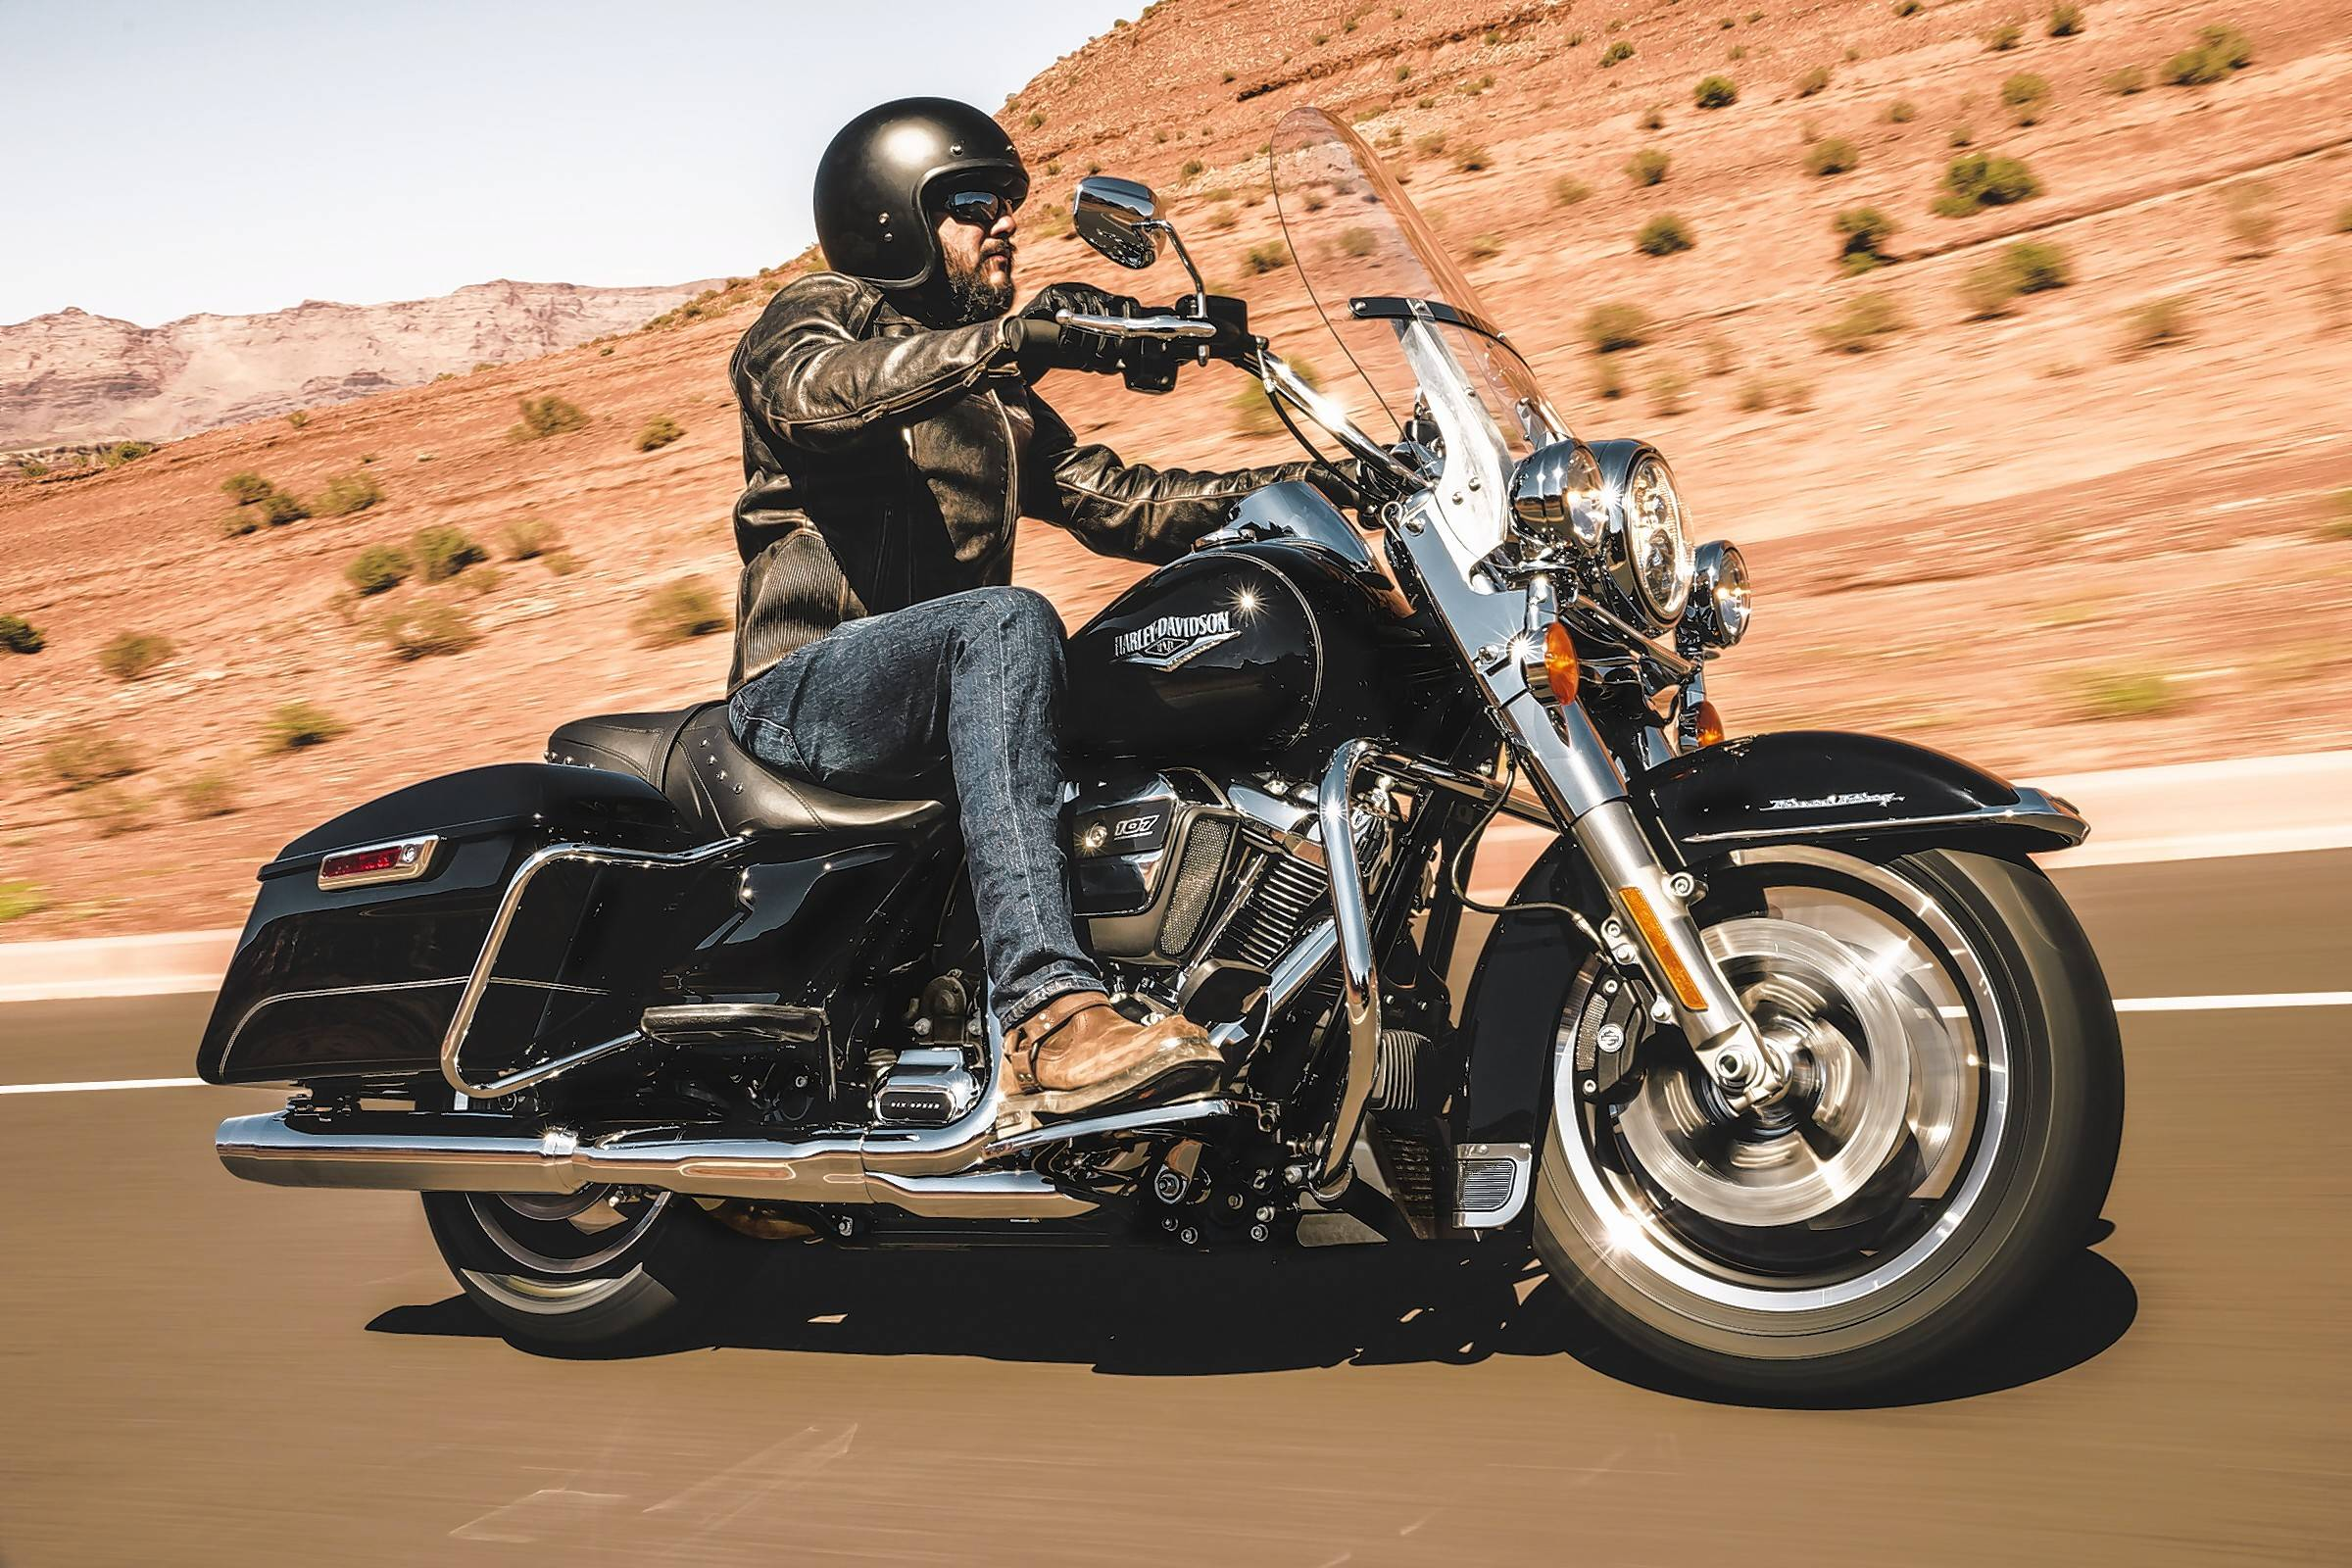 The 2017 Harley-Davidson Road King has been redesigned to take full advantage of the new Milwaukee 8 engine.